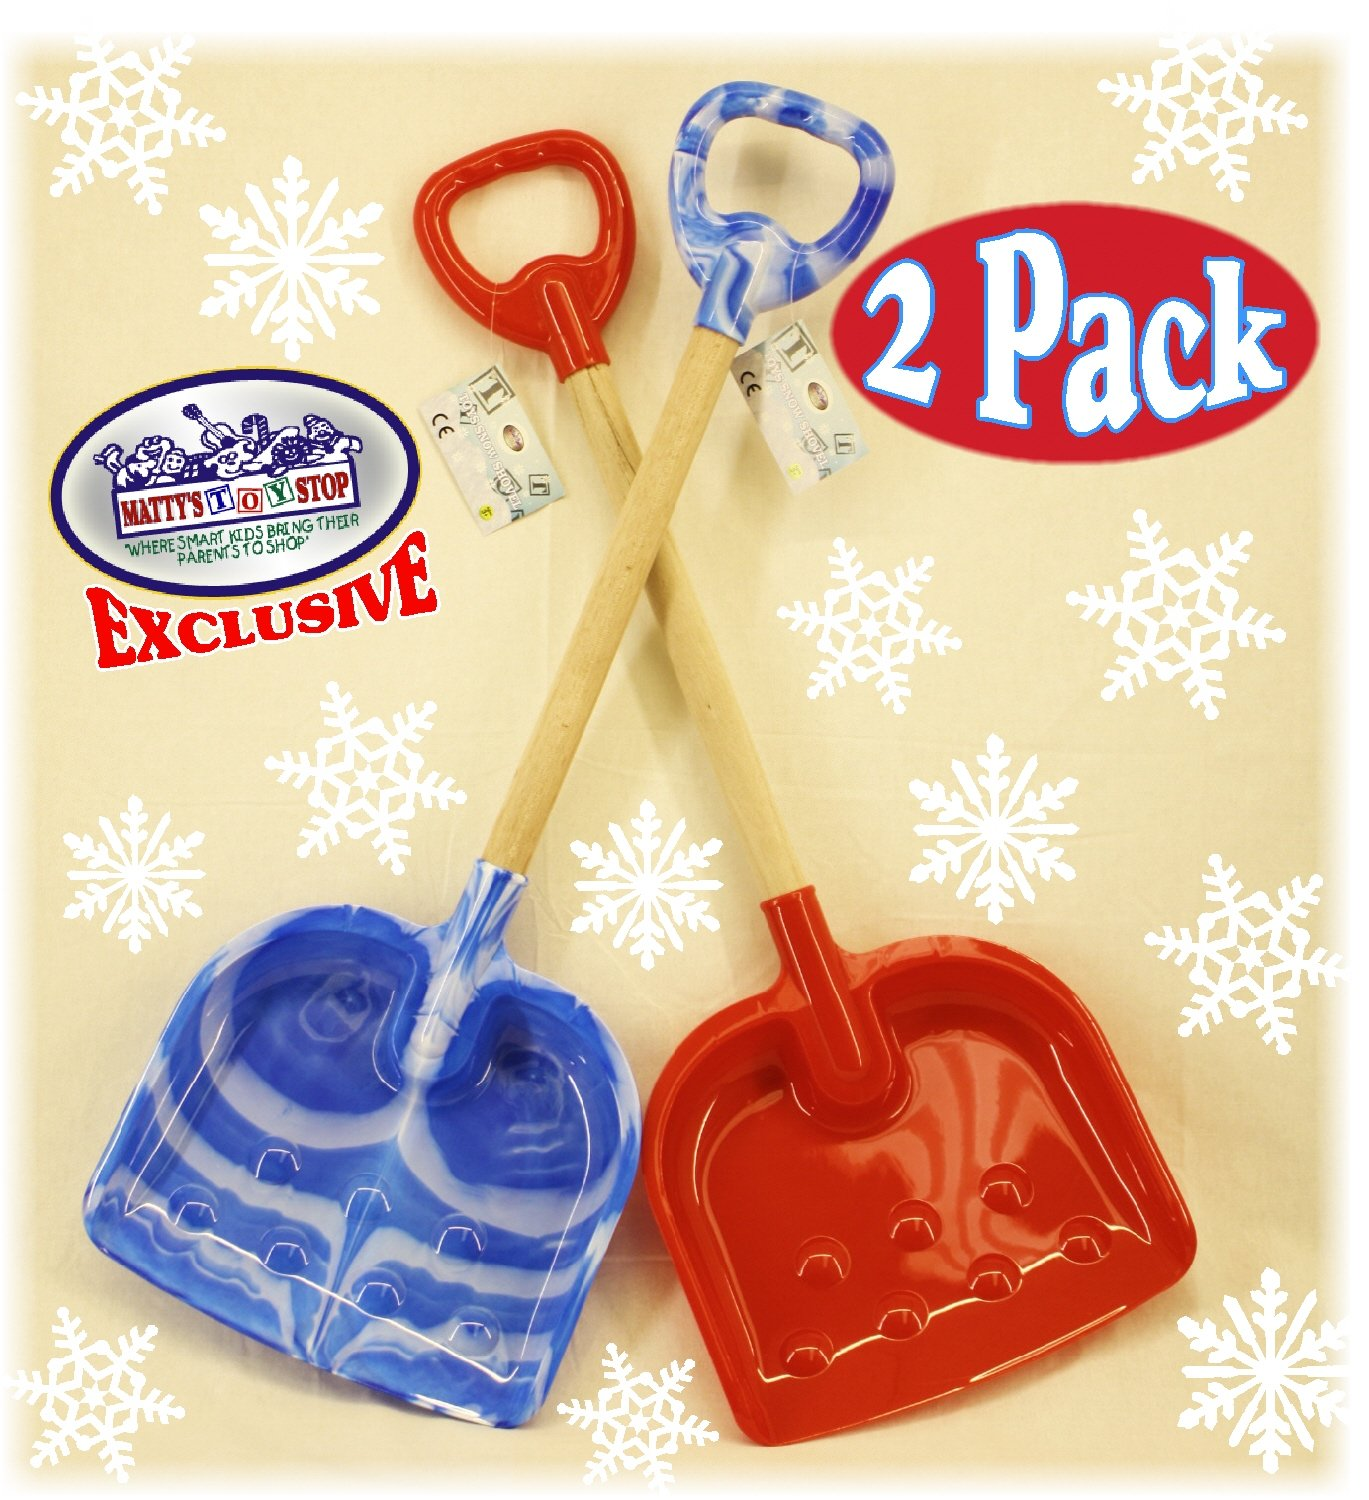 Matty's Toy Stop 28'' Heavy Duty Wooden Snow Shovels with Plastic Scoop & Handle for Kids - 2 Pack (Red & Blue Swirl) by Matty's Toy Stop (Image #1)